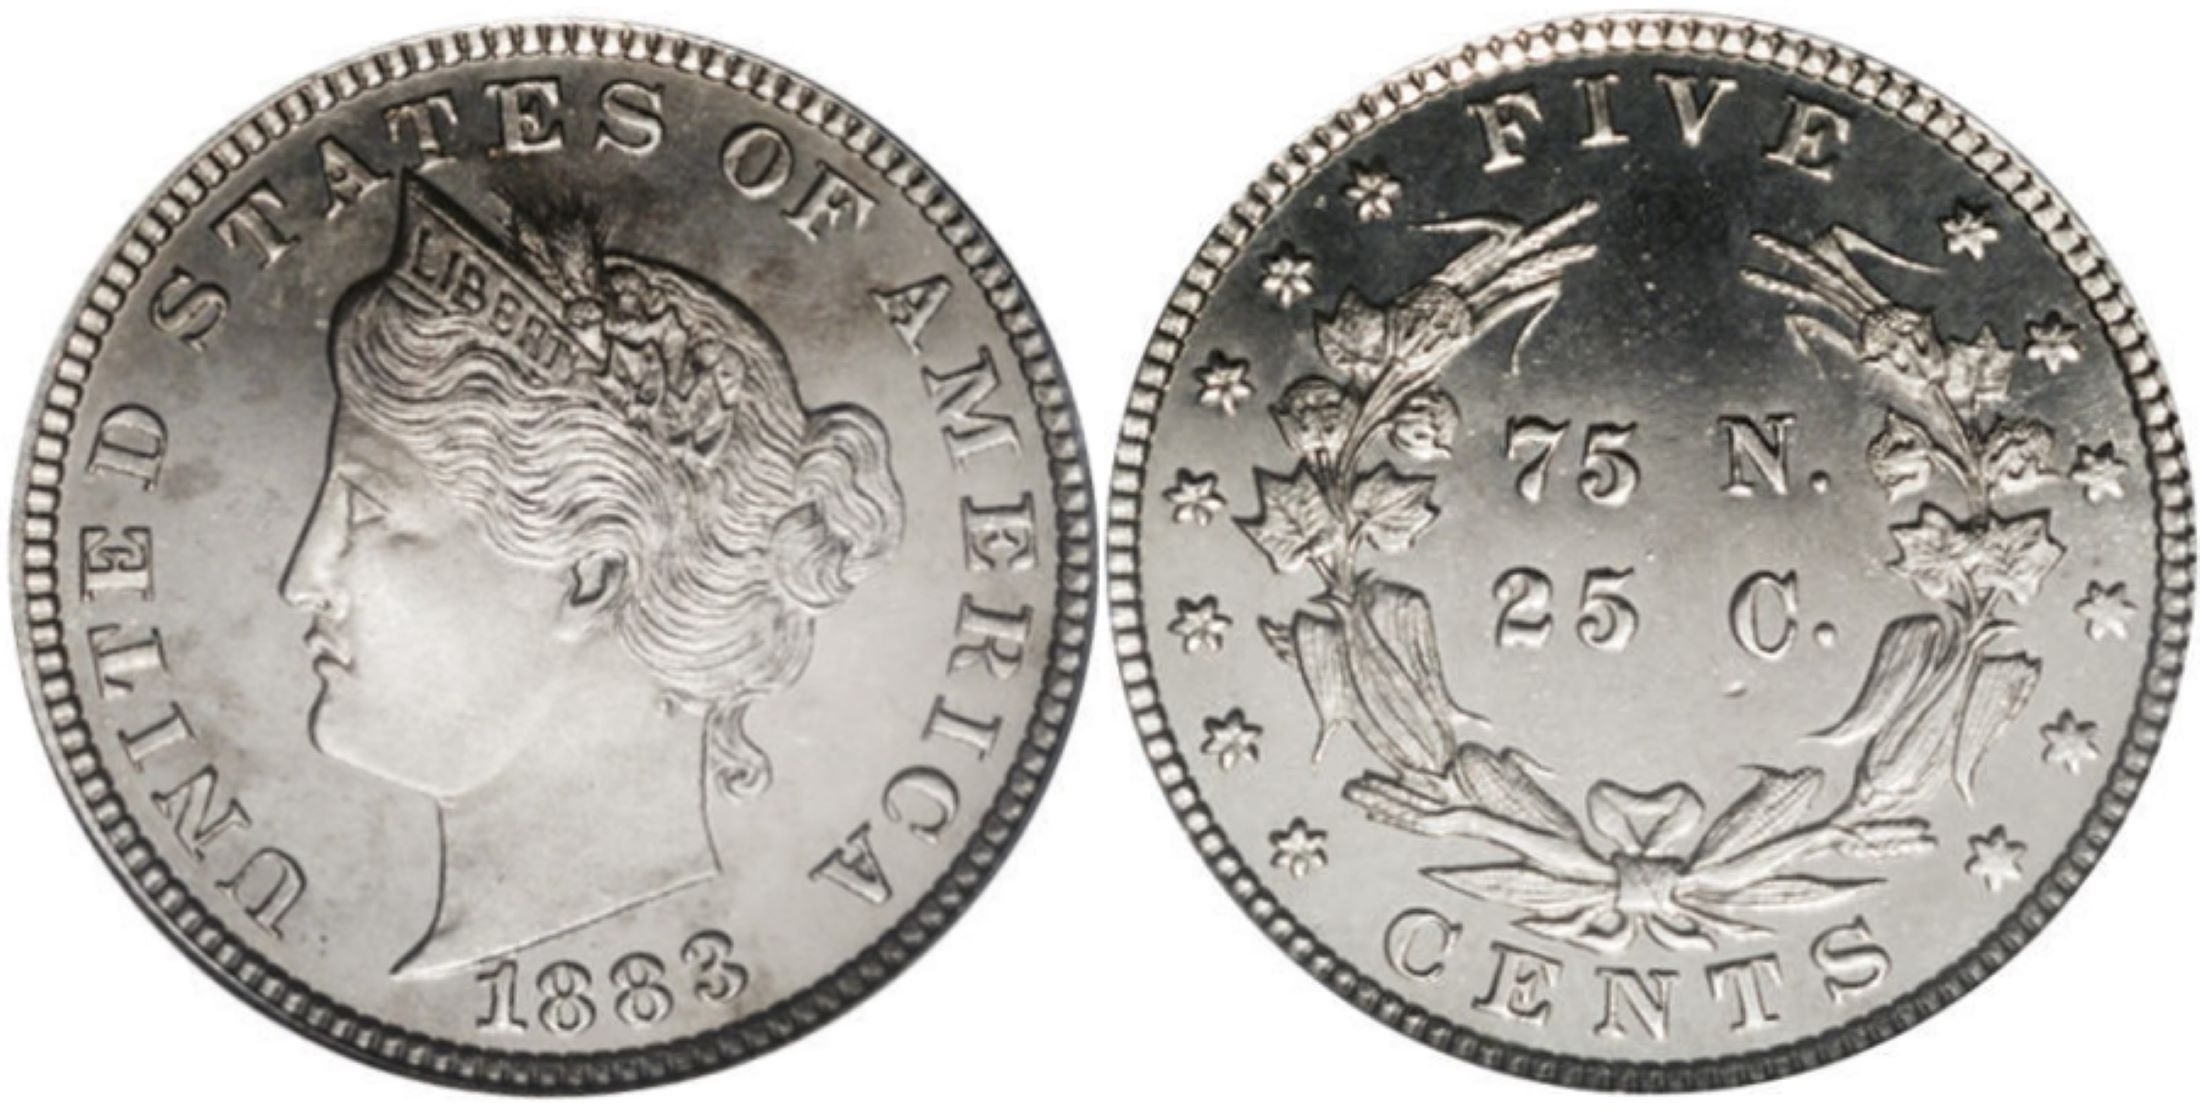 """PCGS PR65<BR>Image courtesy of <a href=""""http://www.ha.com"""" target=""""_blank"""">Heritage Numismatic Auctions</a>"""